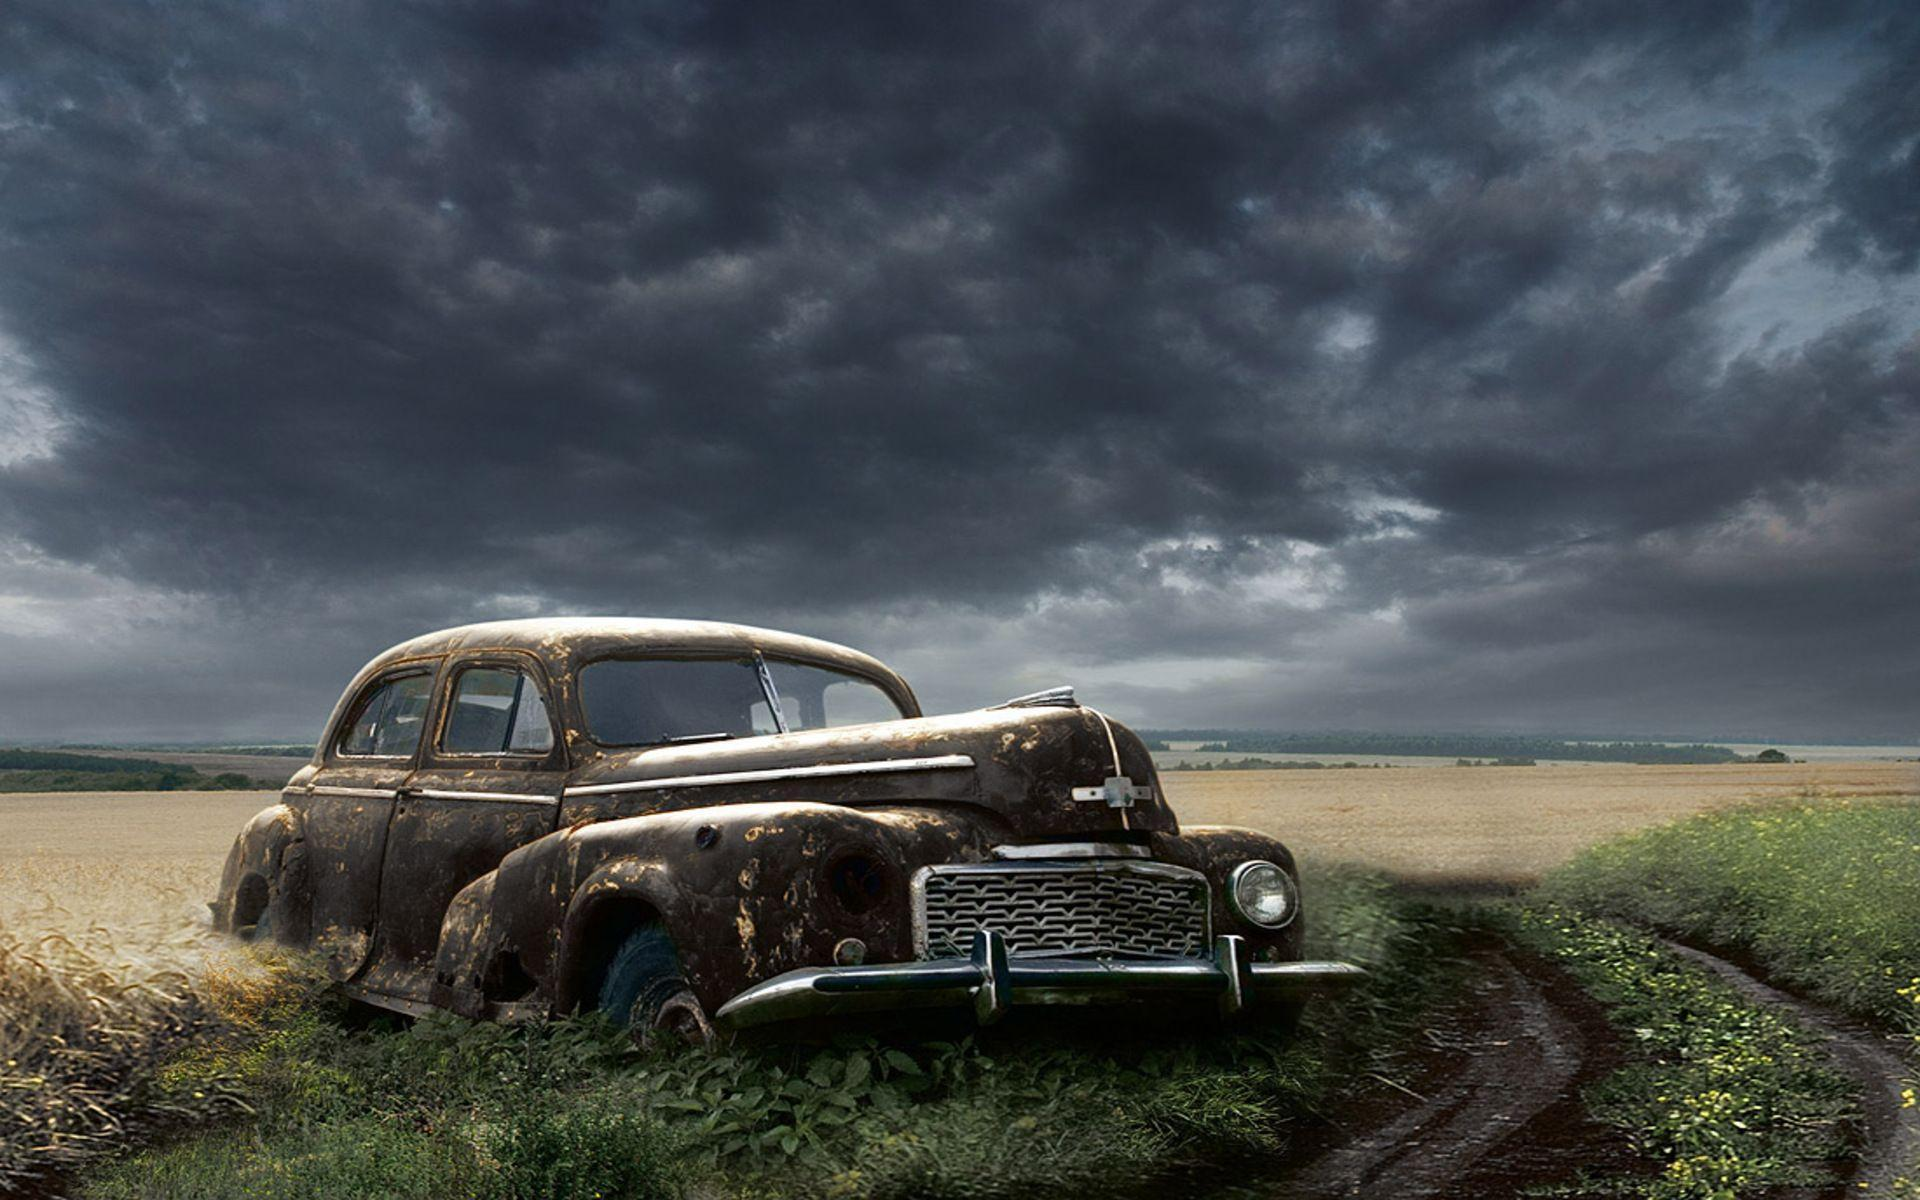 Merveilleux Nothing Found For Oldcar Hd Wallpaper